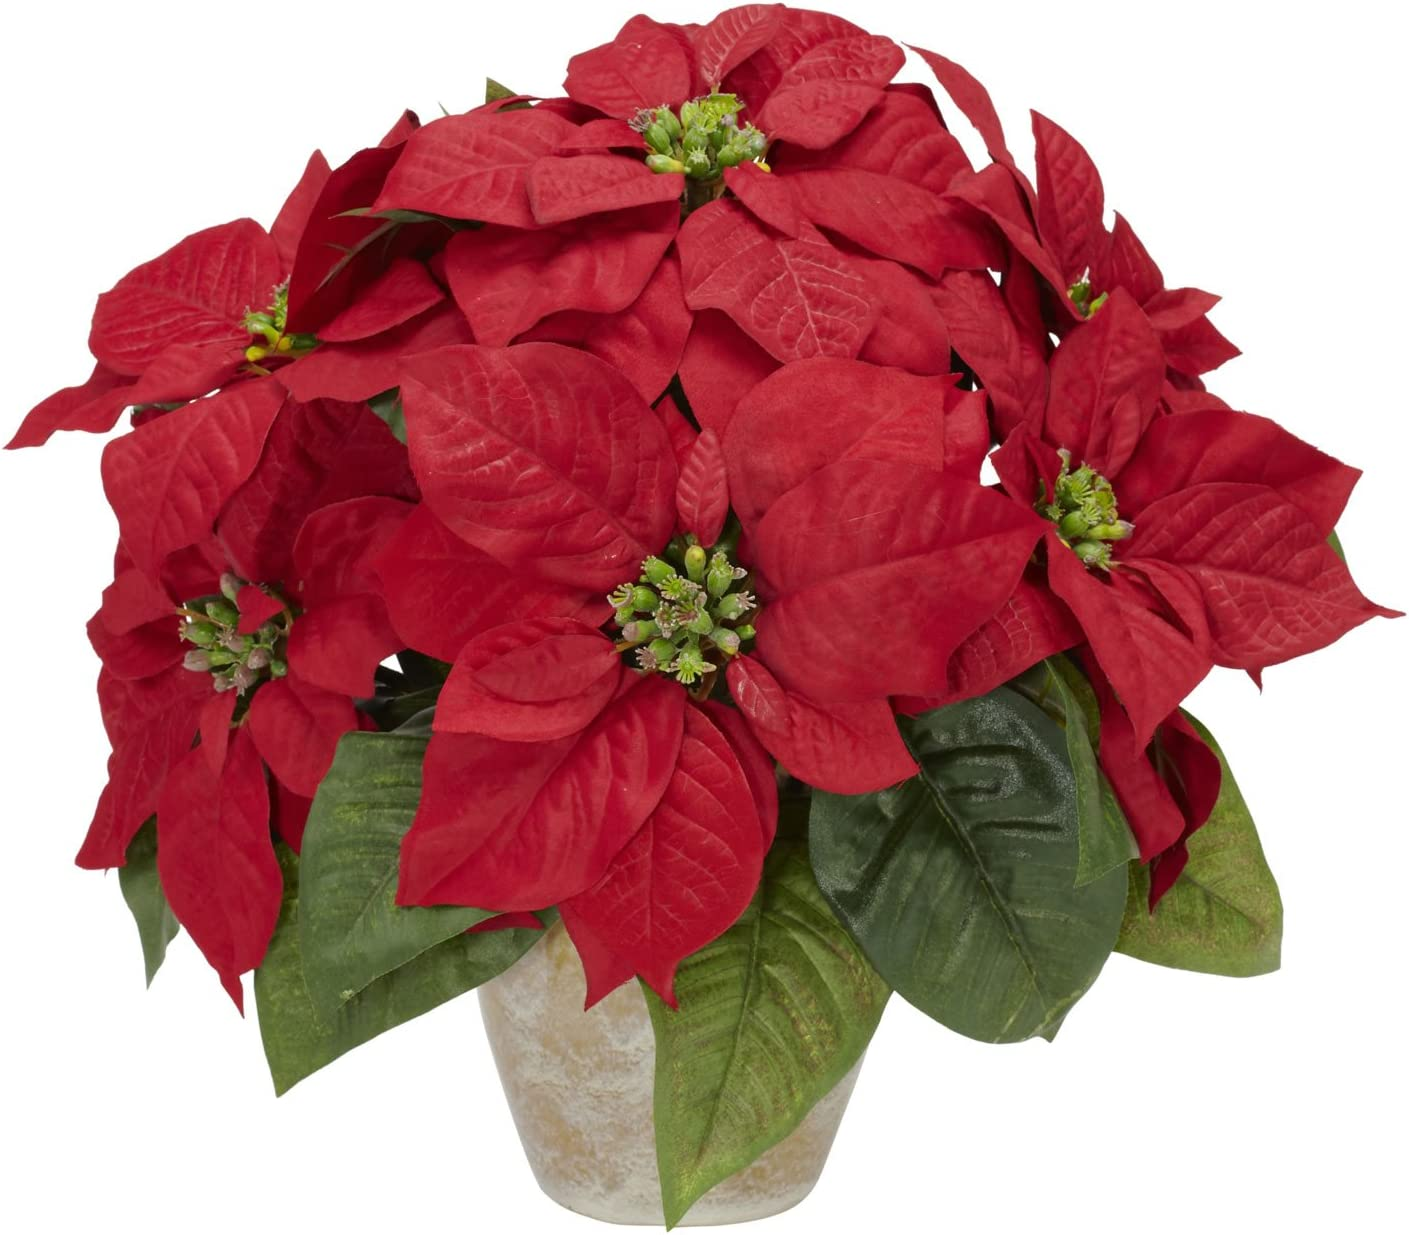 Amazon Com Nearly Natural 1268 Poinsettia With Ceramic Vase Silk Flower Arrangement Red 6 75 X 6 75 X 22 5 Home Kitchen